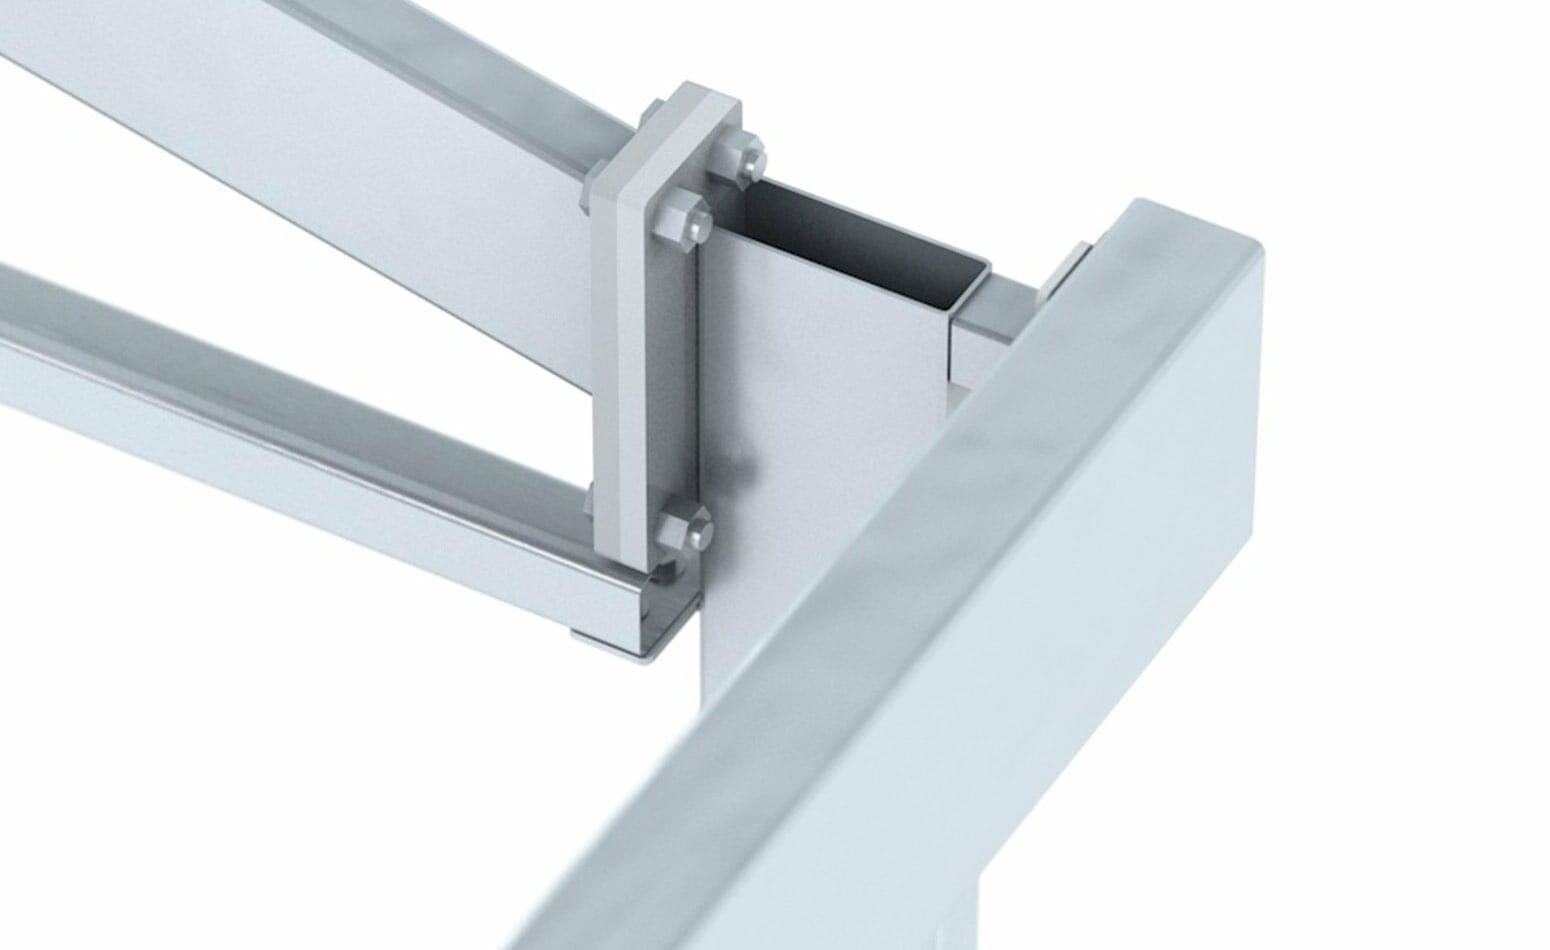 large-bolts-connection-hi-tensile